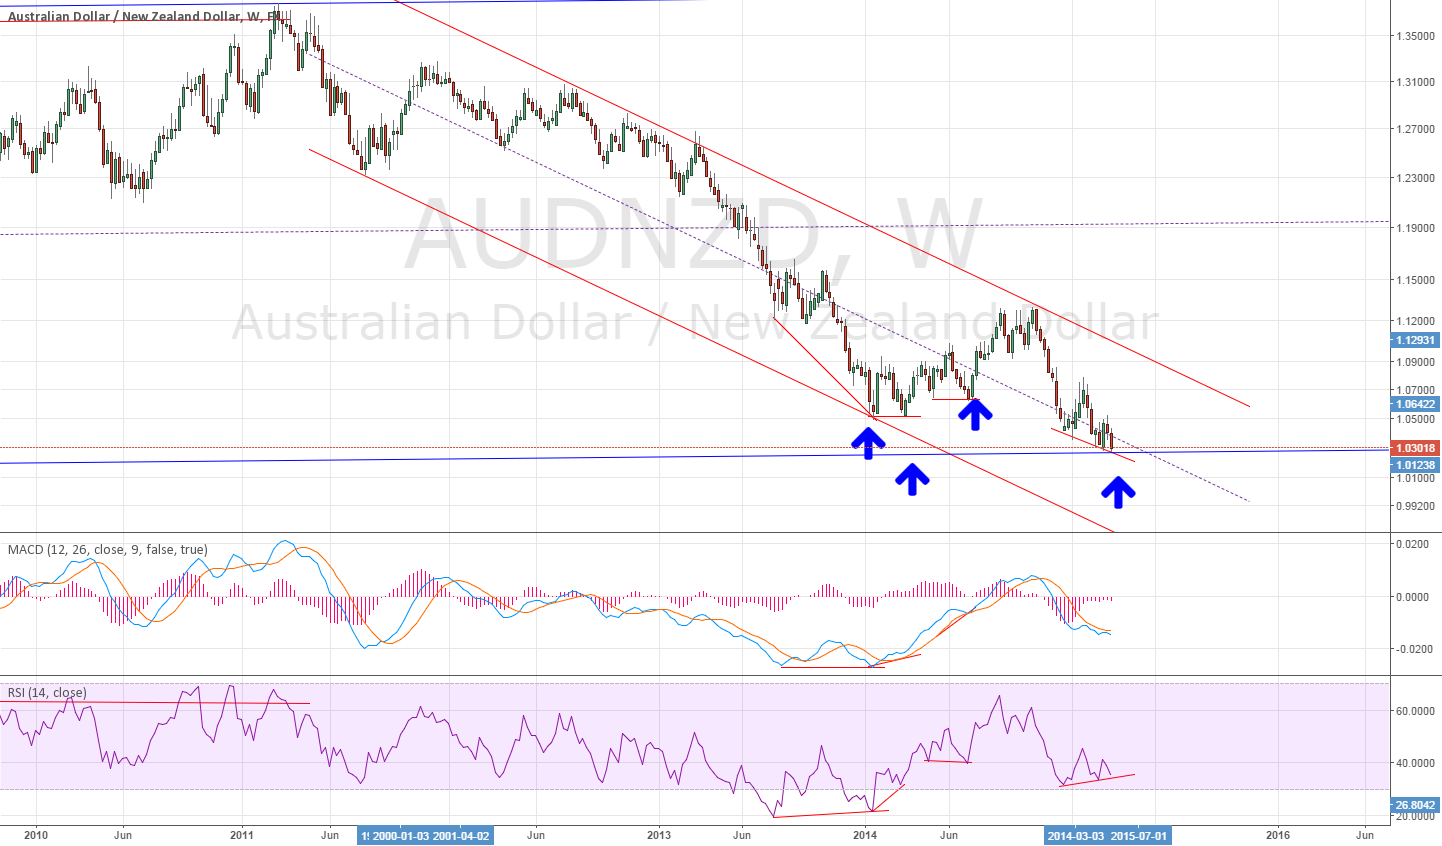 Weekly for AUDNZD divergence Interesting 0_0